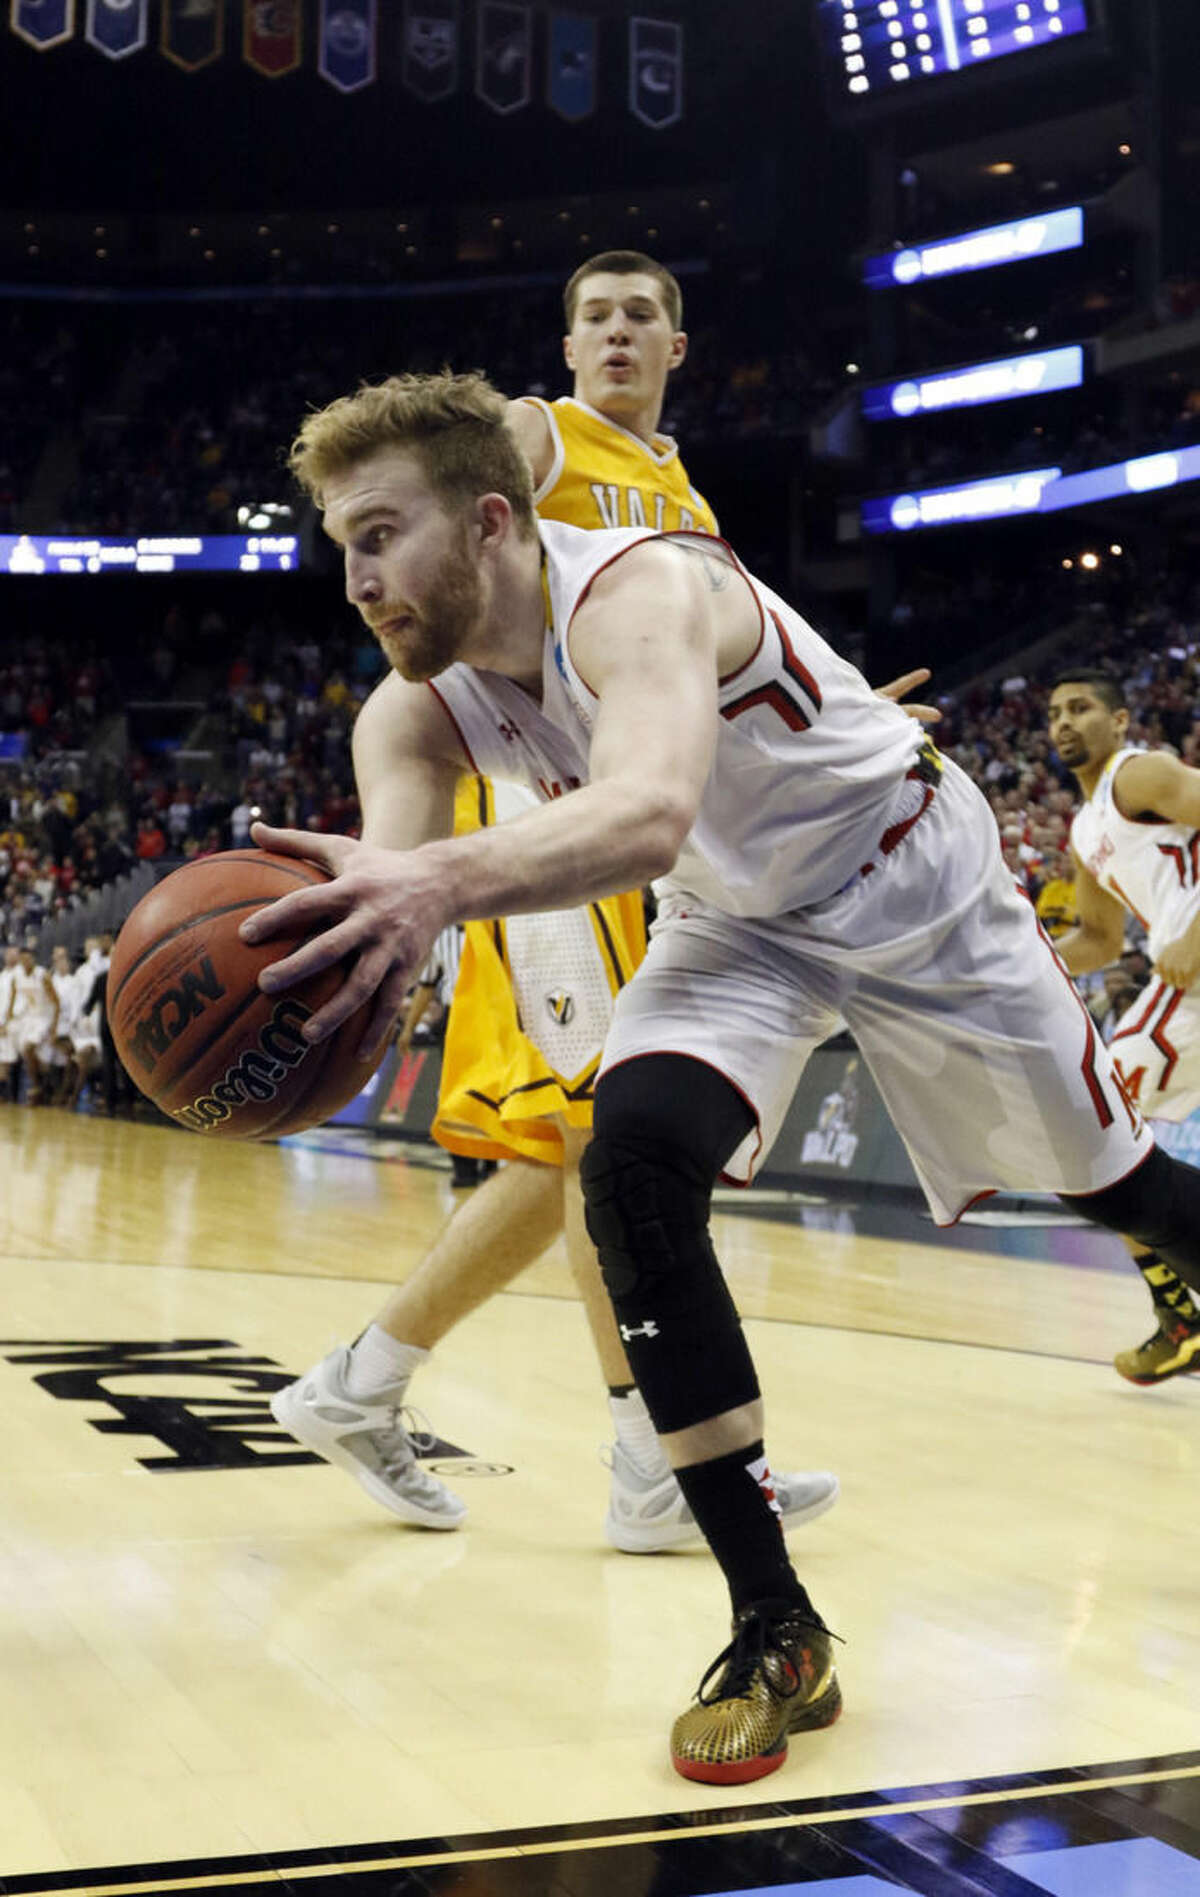 Maryland's Evan Smotrycz keeps the ball from falling out of bounds in the final seconds of a 65-62 win over Valparaiso in an NCAA tournament college basketball game in the Round of 64 in Columbus, Ohio, Friday, March 20, 2015. (AP Photo/Paul Vernon)